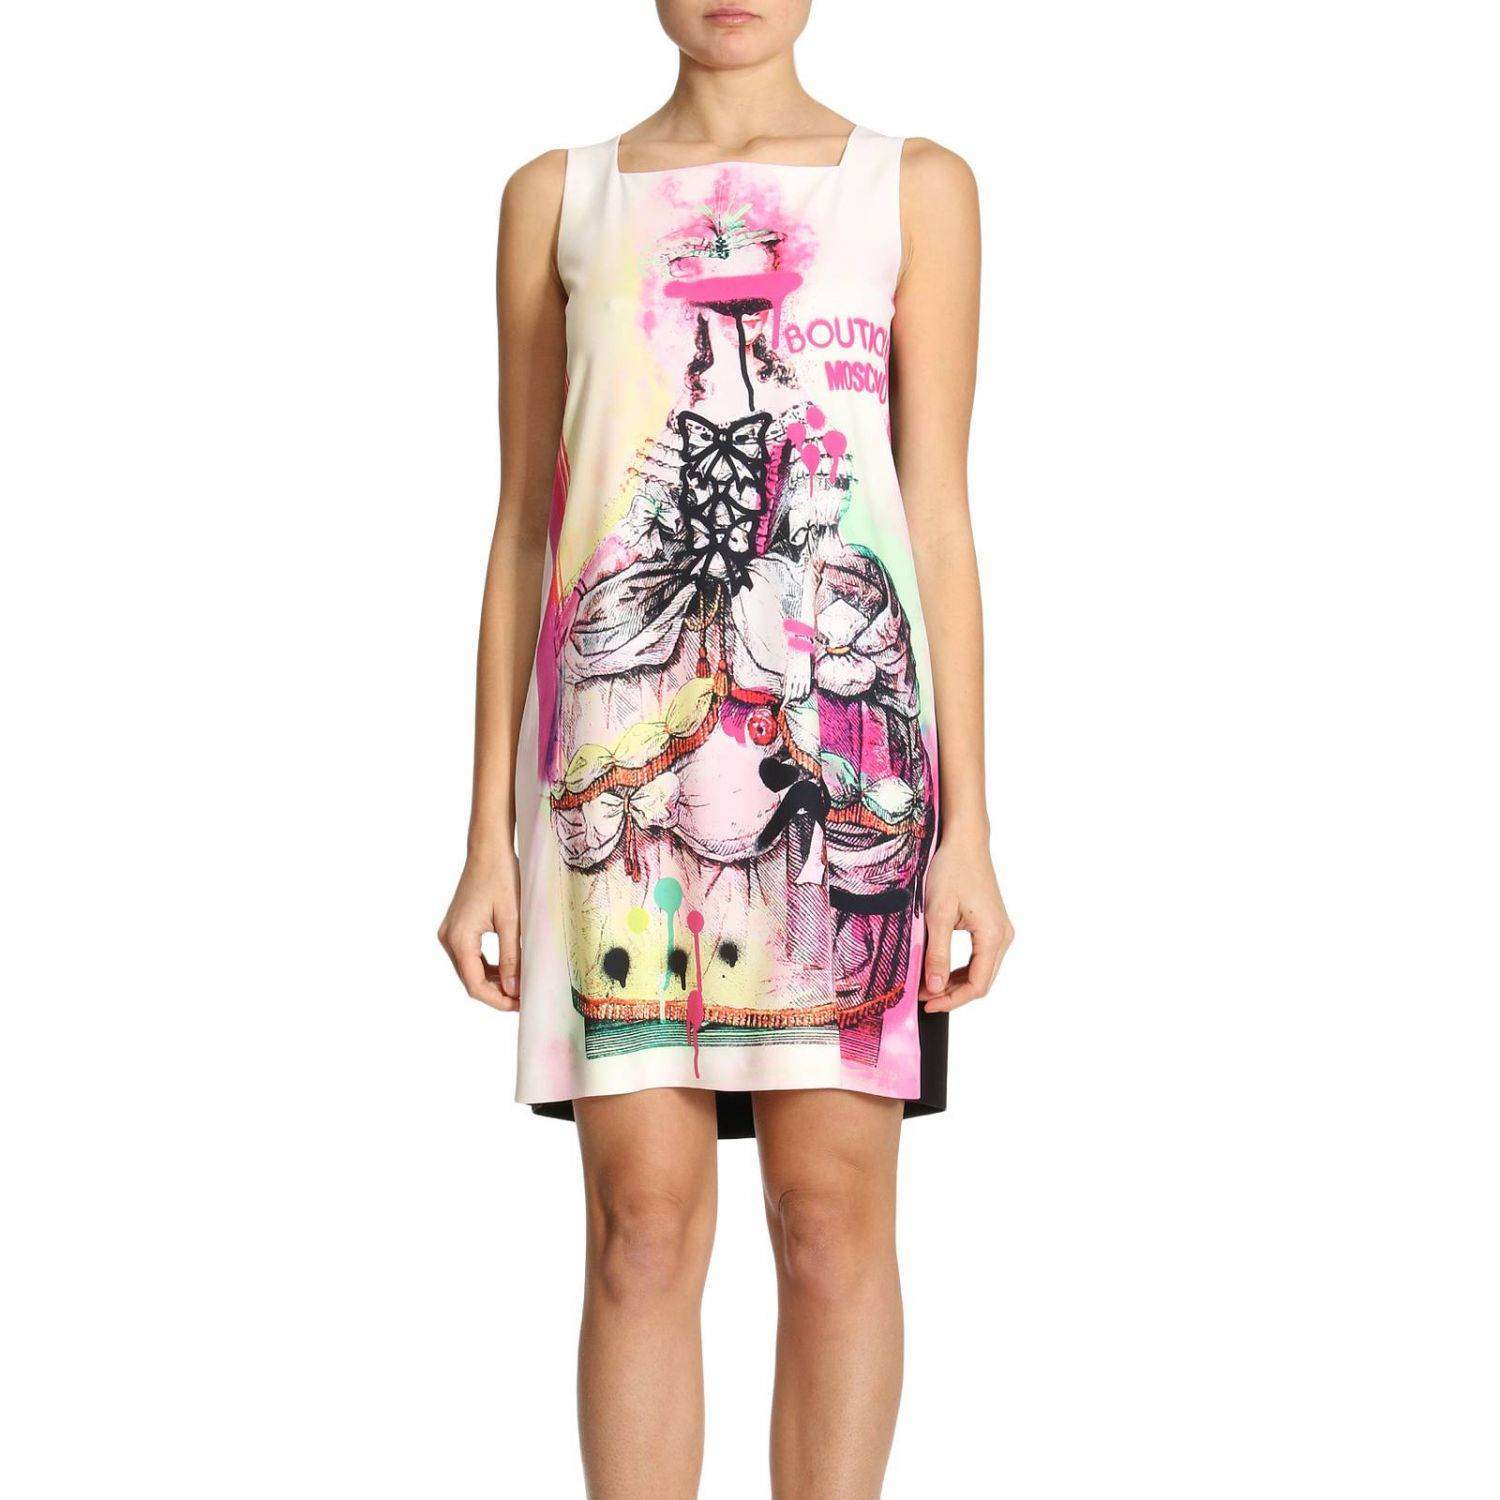 Dress Dress Women Boutique Moschino 8293862